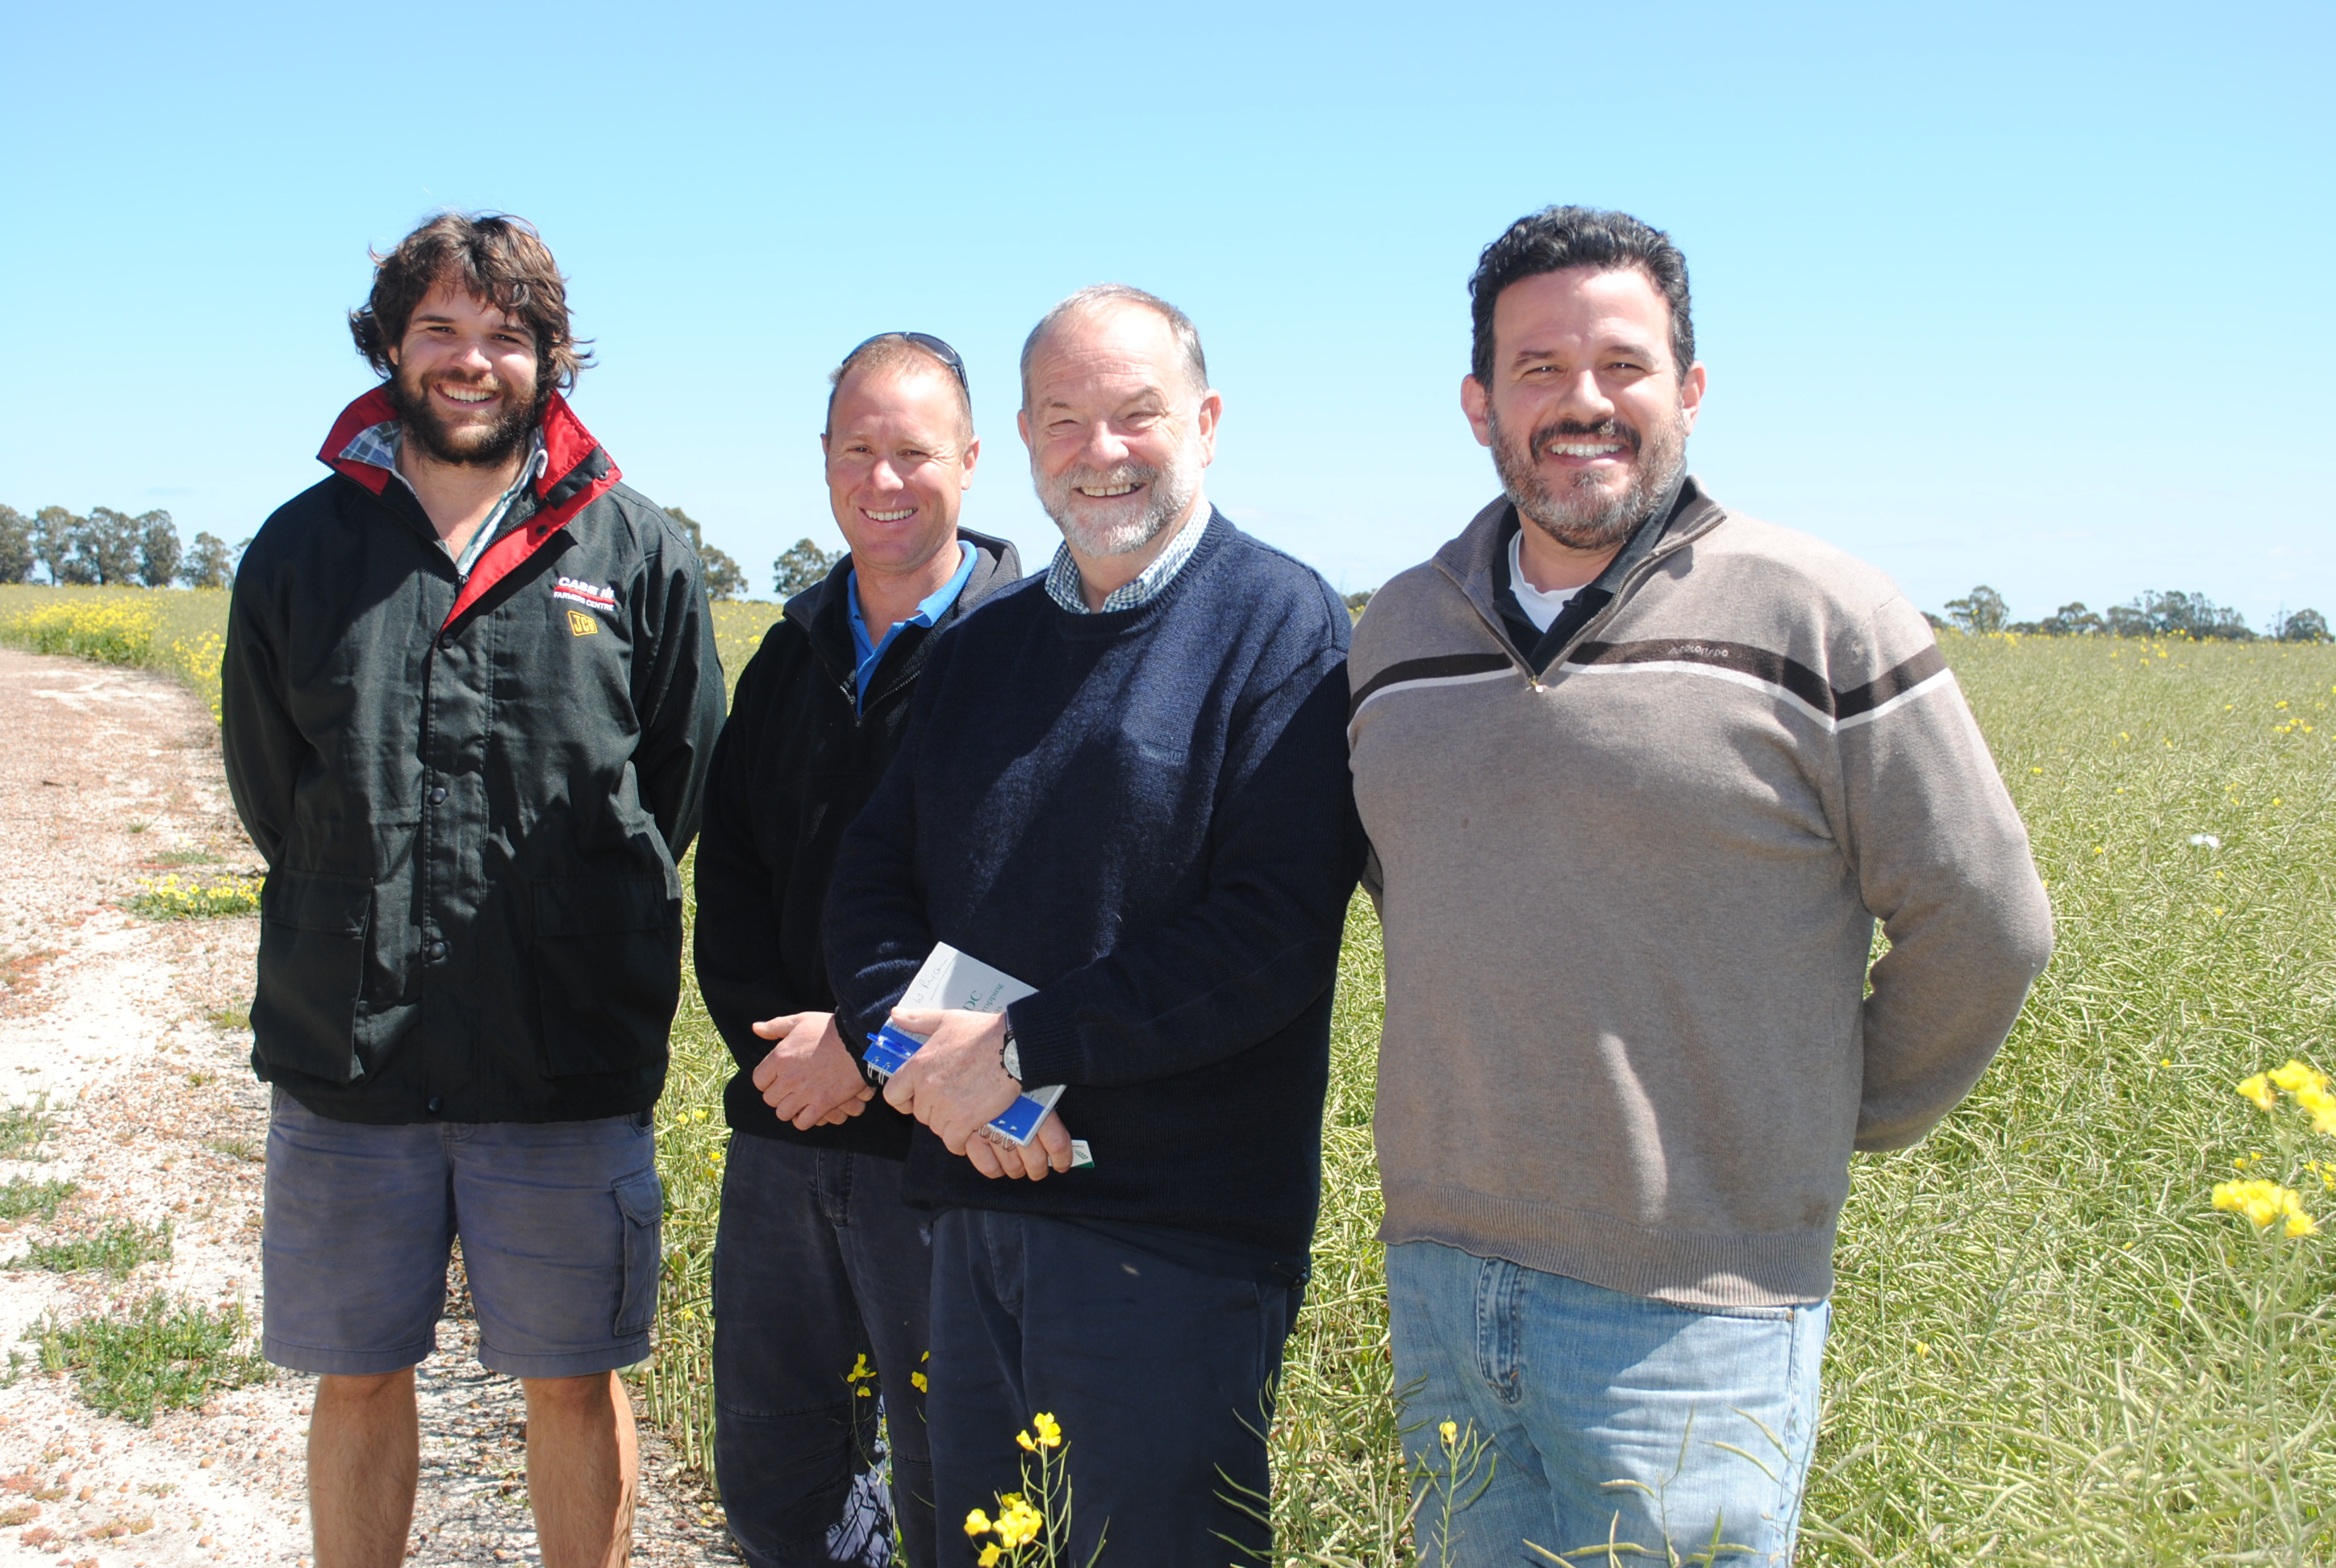 Leon Squibb, left, of Tambellup, and Mark Paganoni, of Broomehill, with GRDC Western Regional Panel member Bill Ryan and GRDC Western Regional Manager Grower Services Roger States.